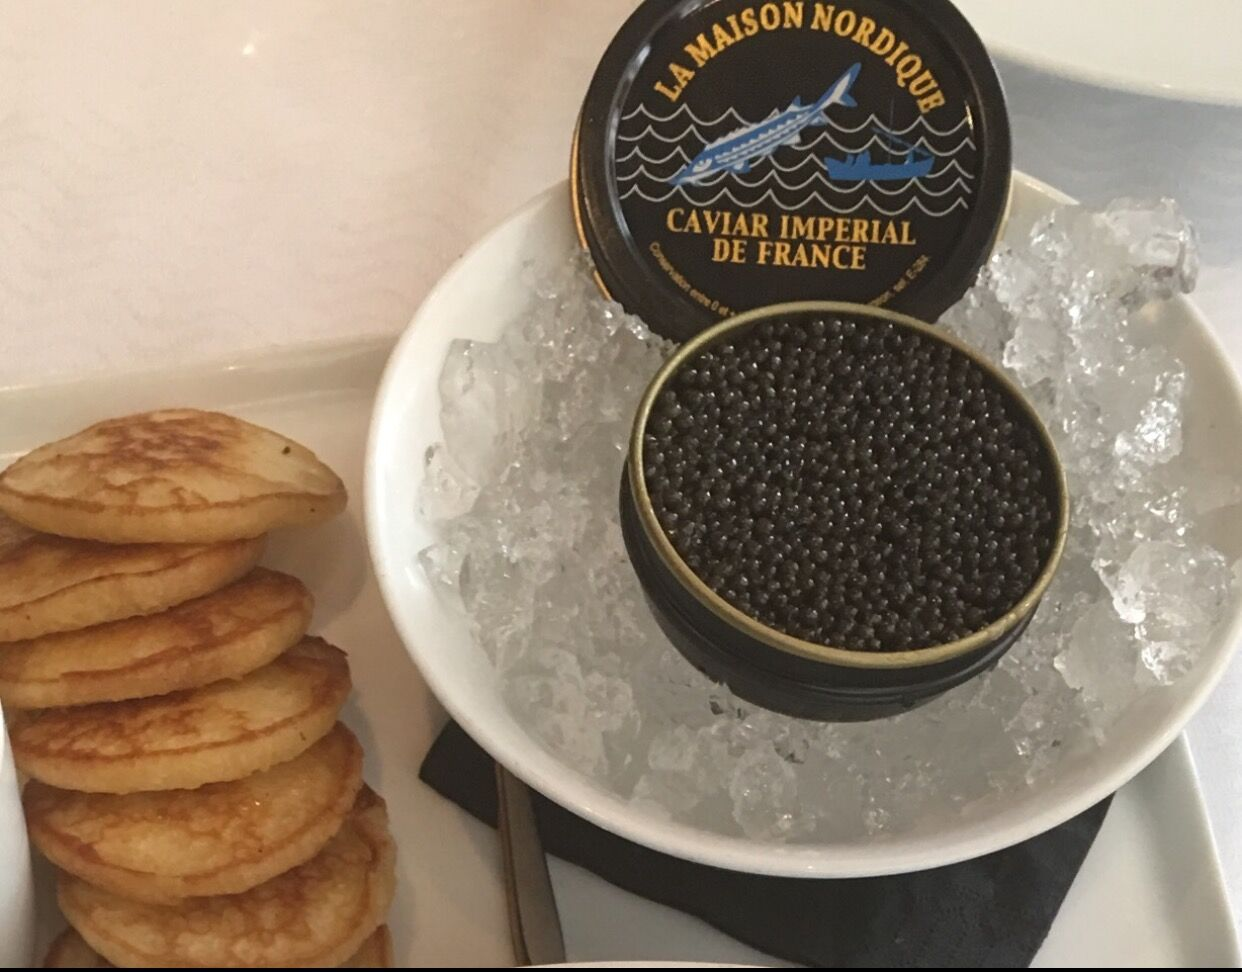 Caviar at Hotel Costes